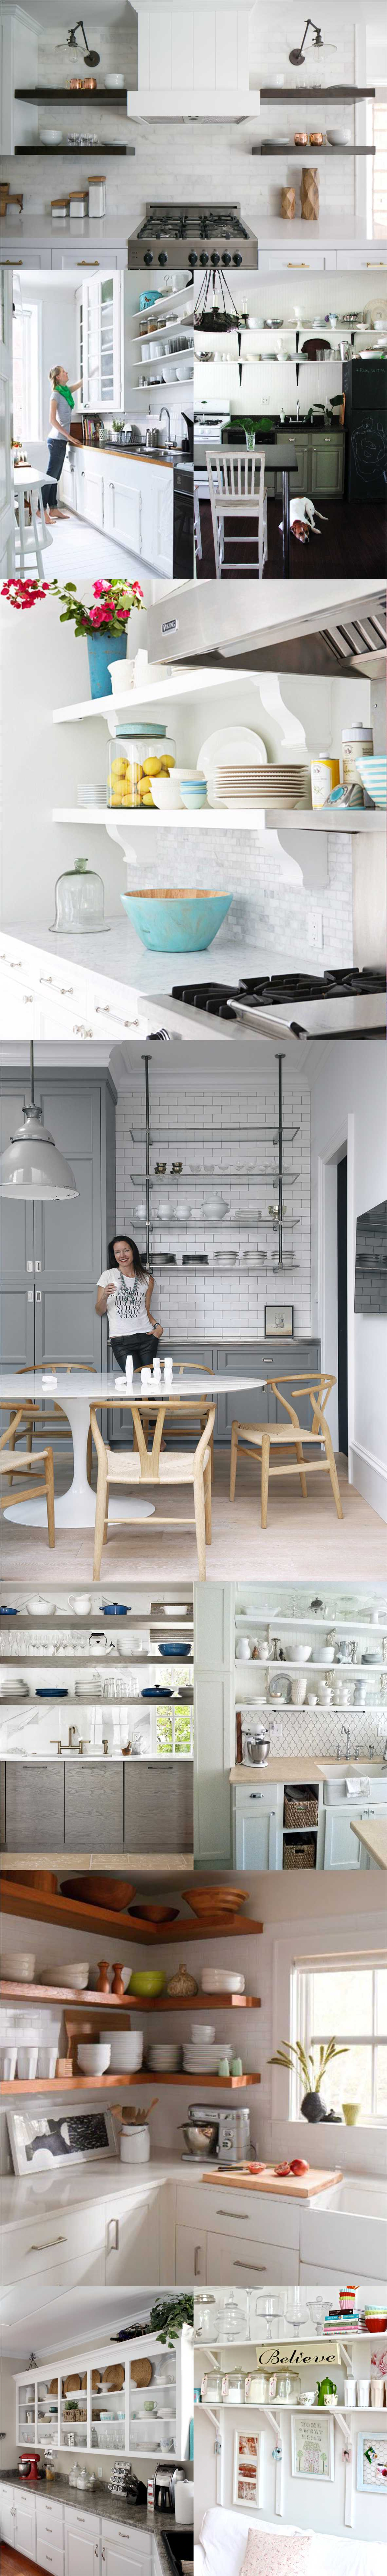 Best White Kitchen Shelves 2018